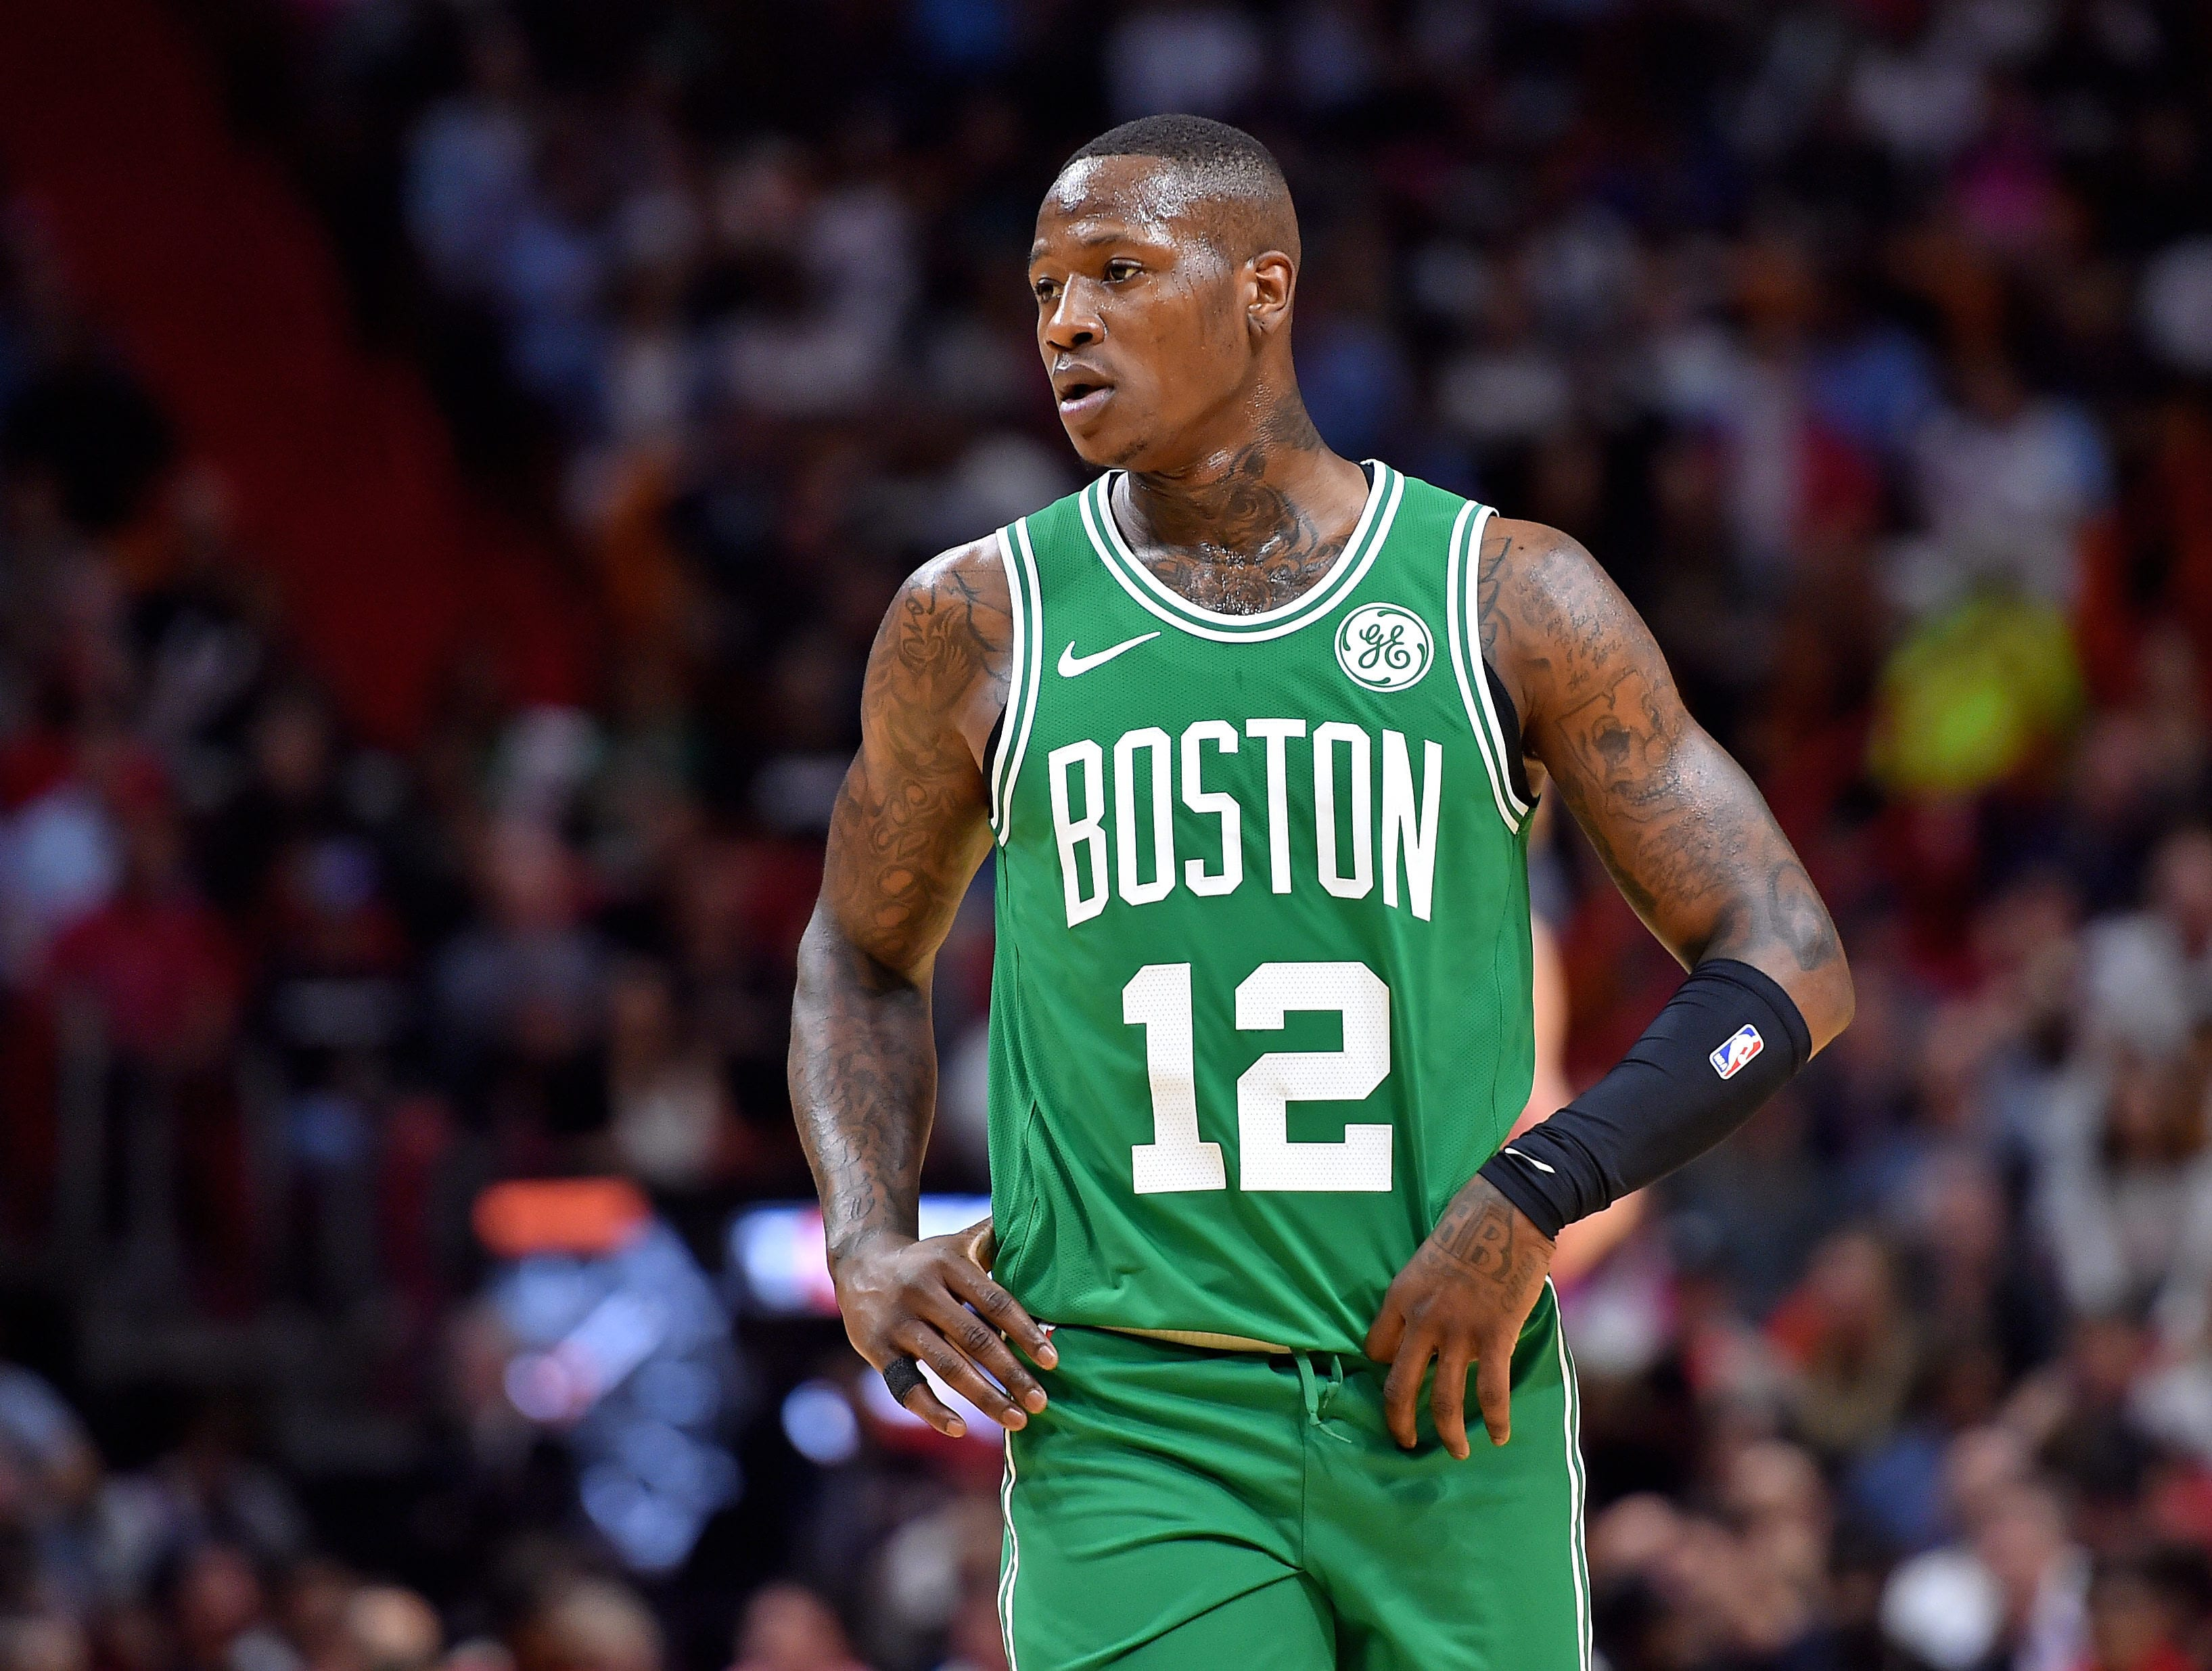 Could the New York Knicks pursue Terry Rozier in free agency?